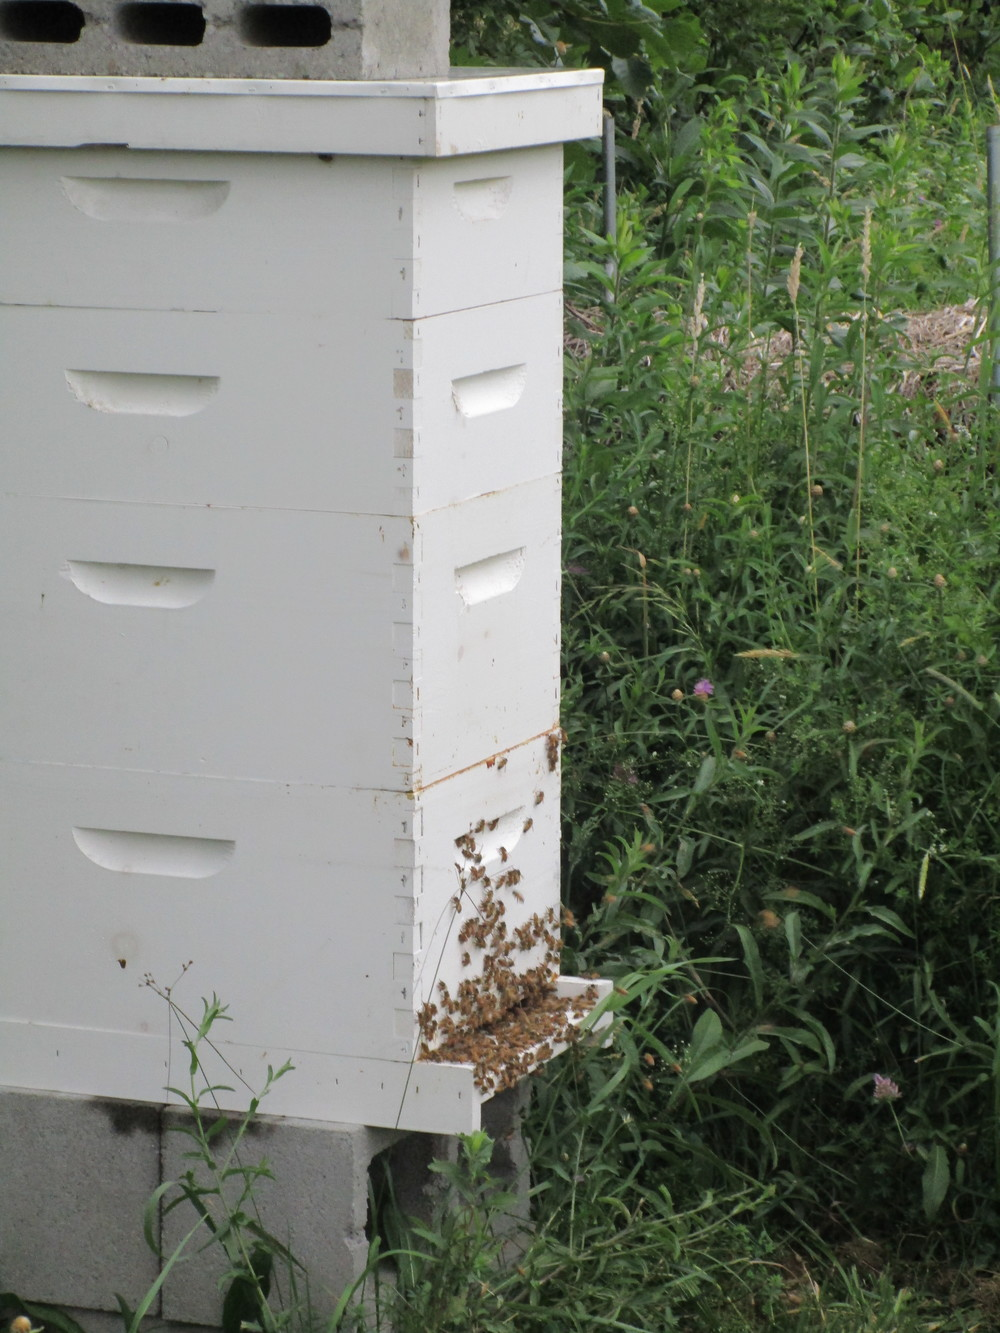 Hive with 2 honey supers (the shorter boxes on the top)